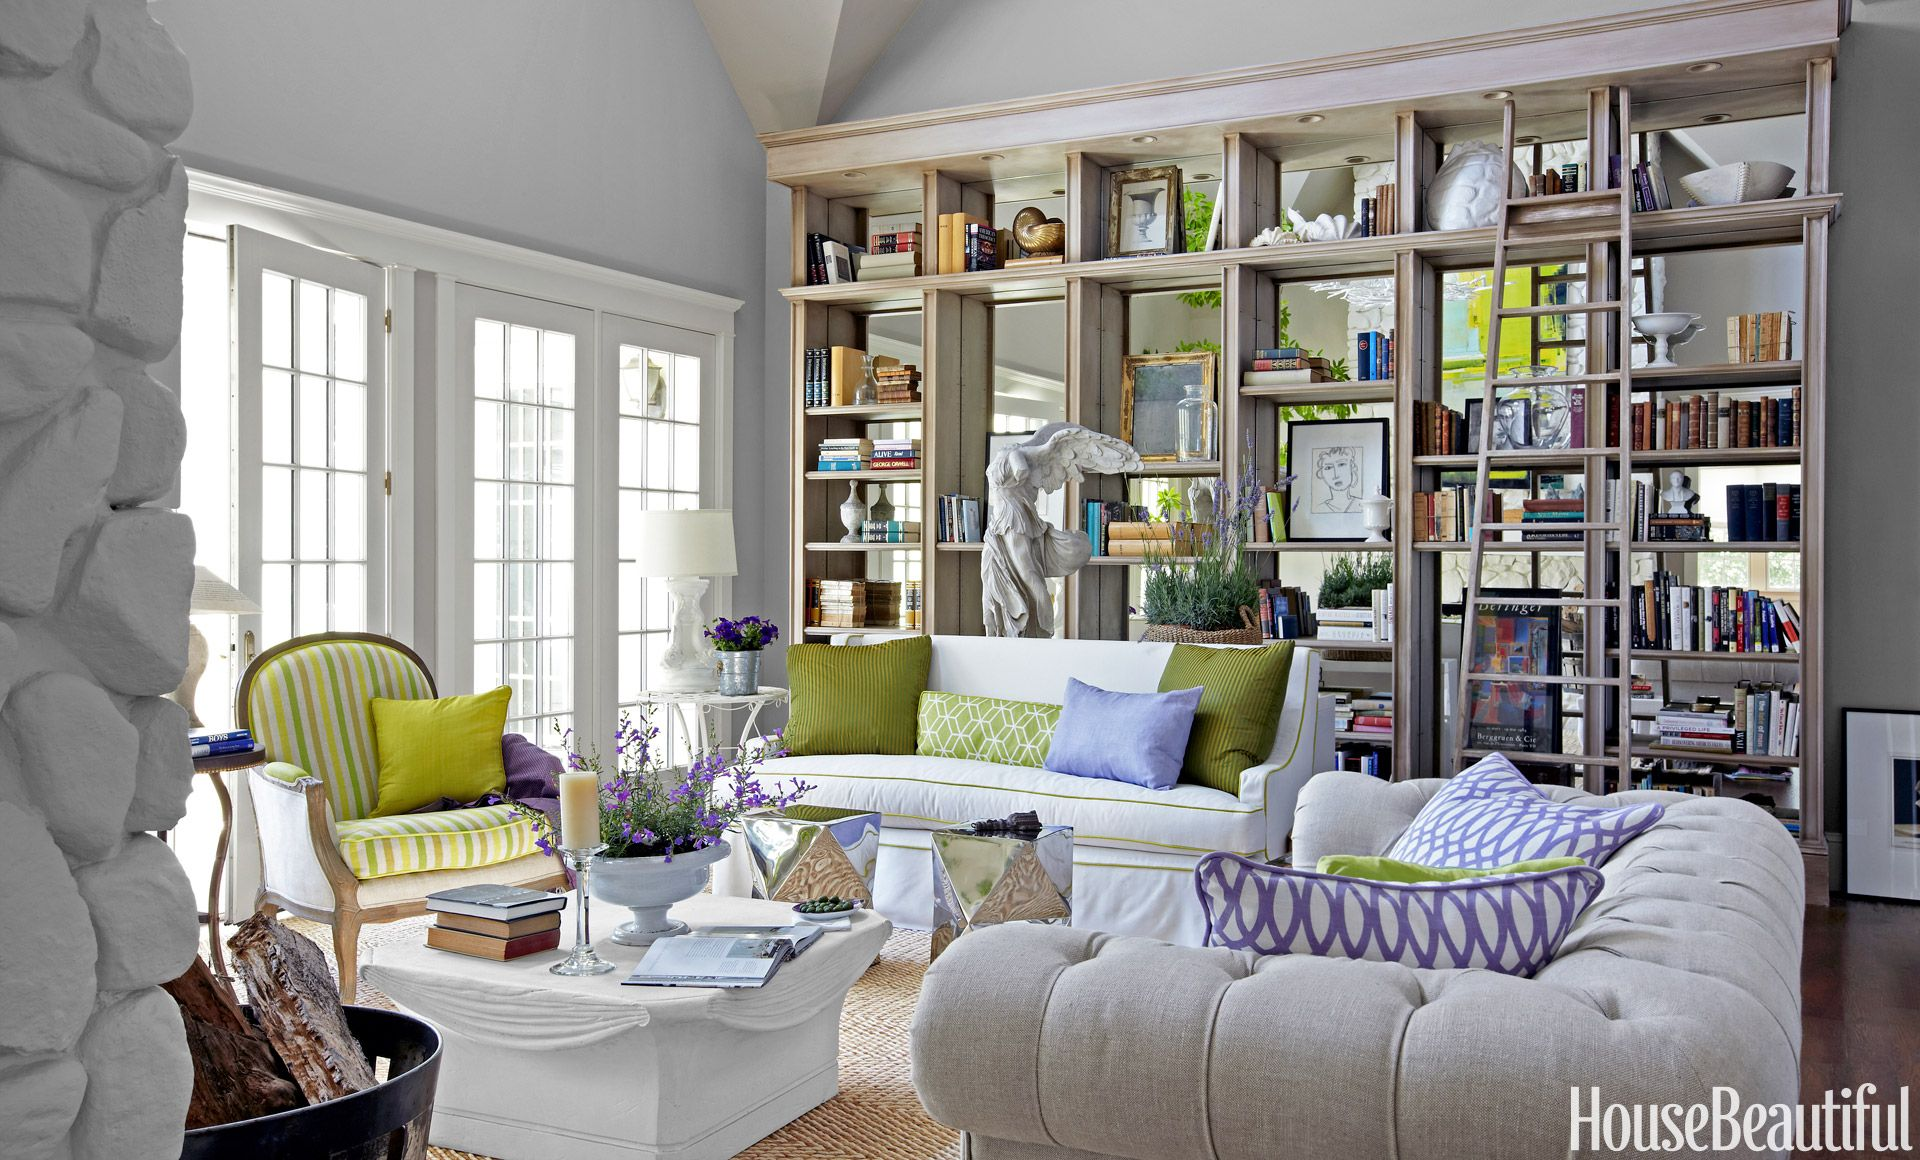 Living Room Bookshelf Decorating Ideas Extraordinary Bookshelf Decorating Ideas  Unique Bookshelf Decor Ideas Design Decoration